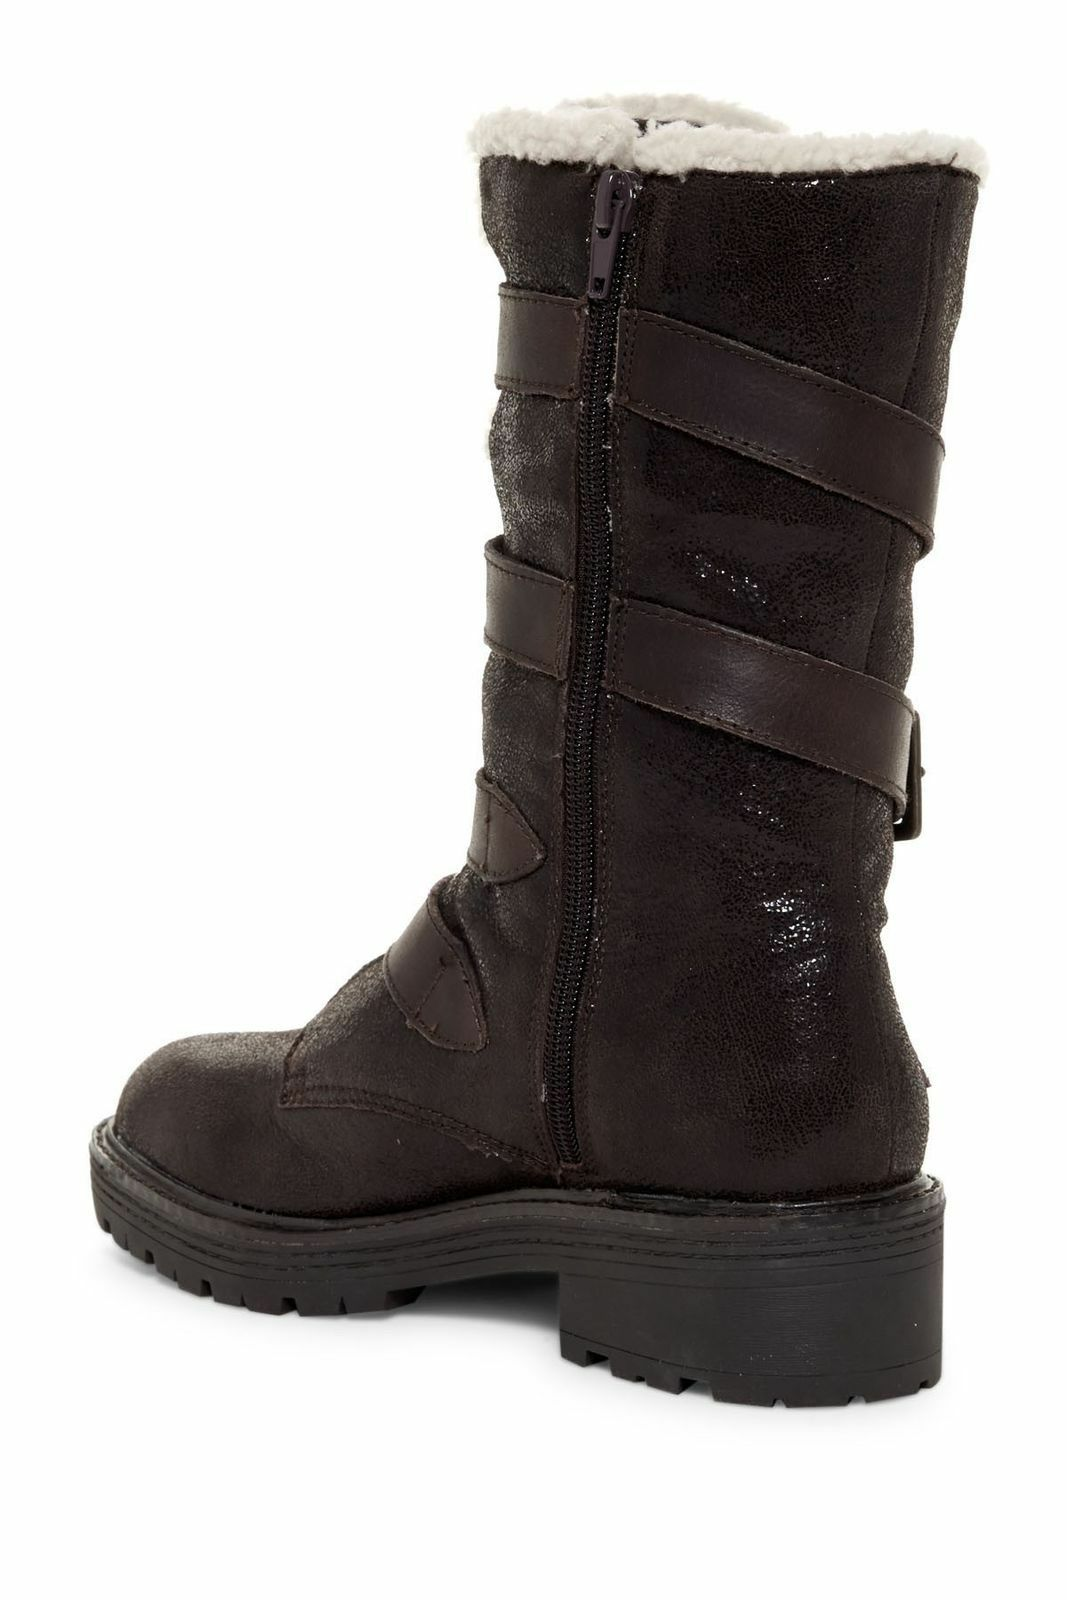 New Kelsi Dagger Brooklyn Womens Moore Buckle Boots Size 7 Chocolate Brown